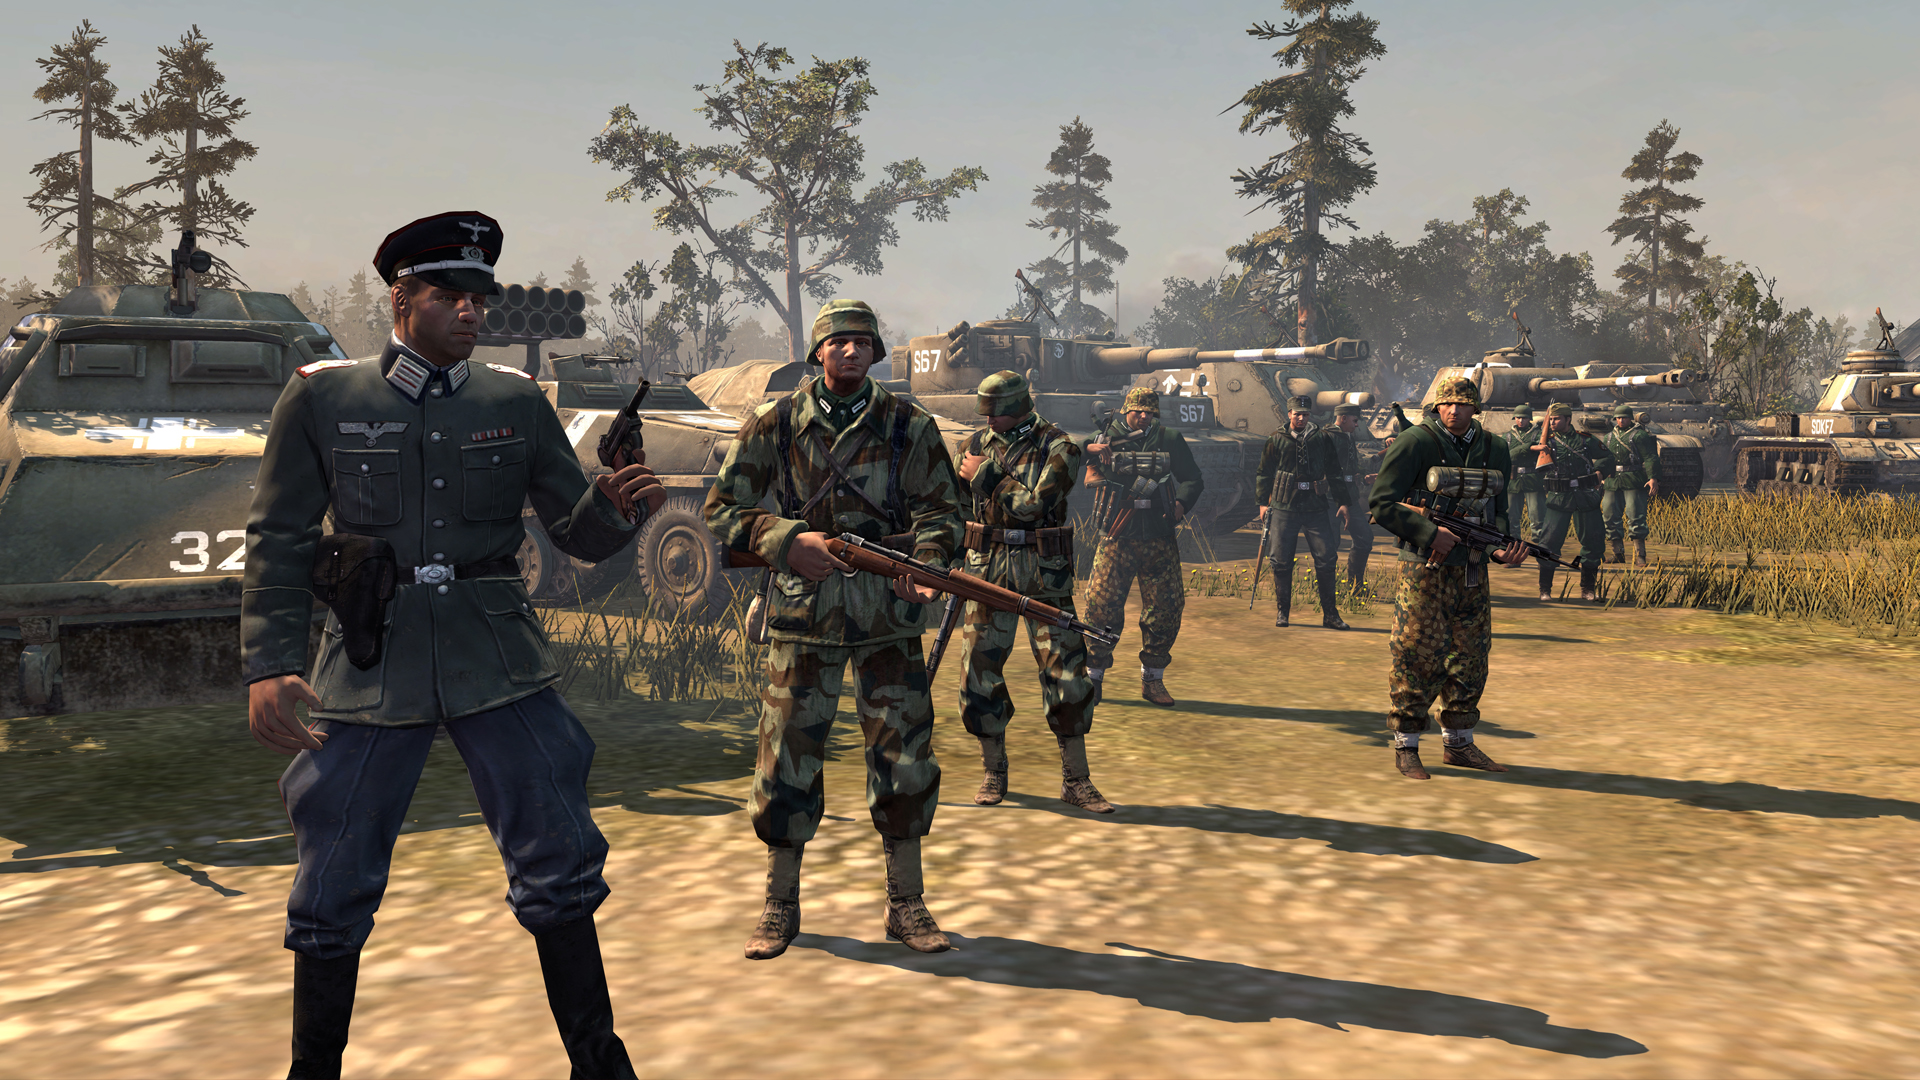 Coh 2 Case Blue : Buy company of heroes master collection cd key at the best price